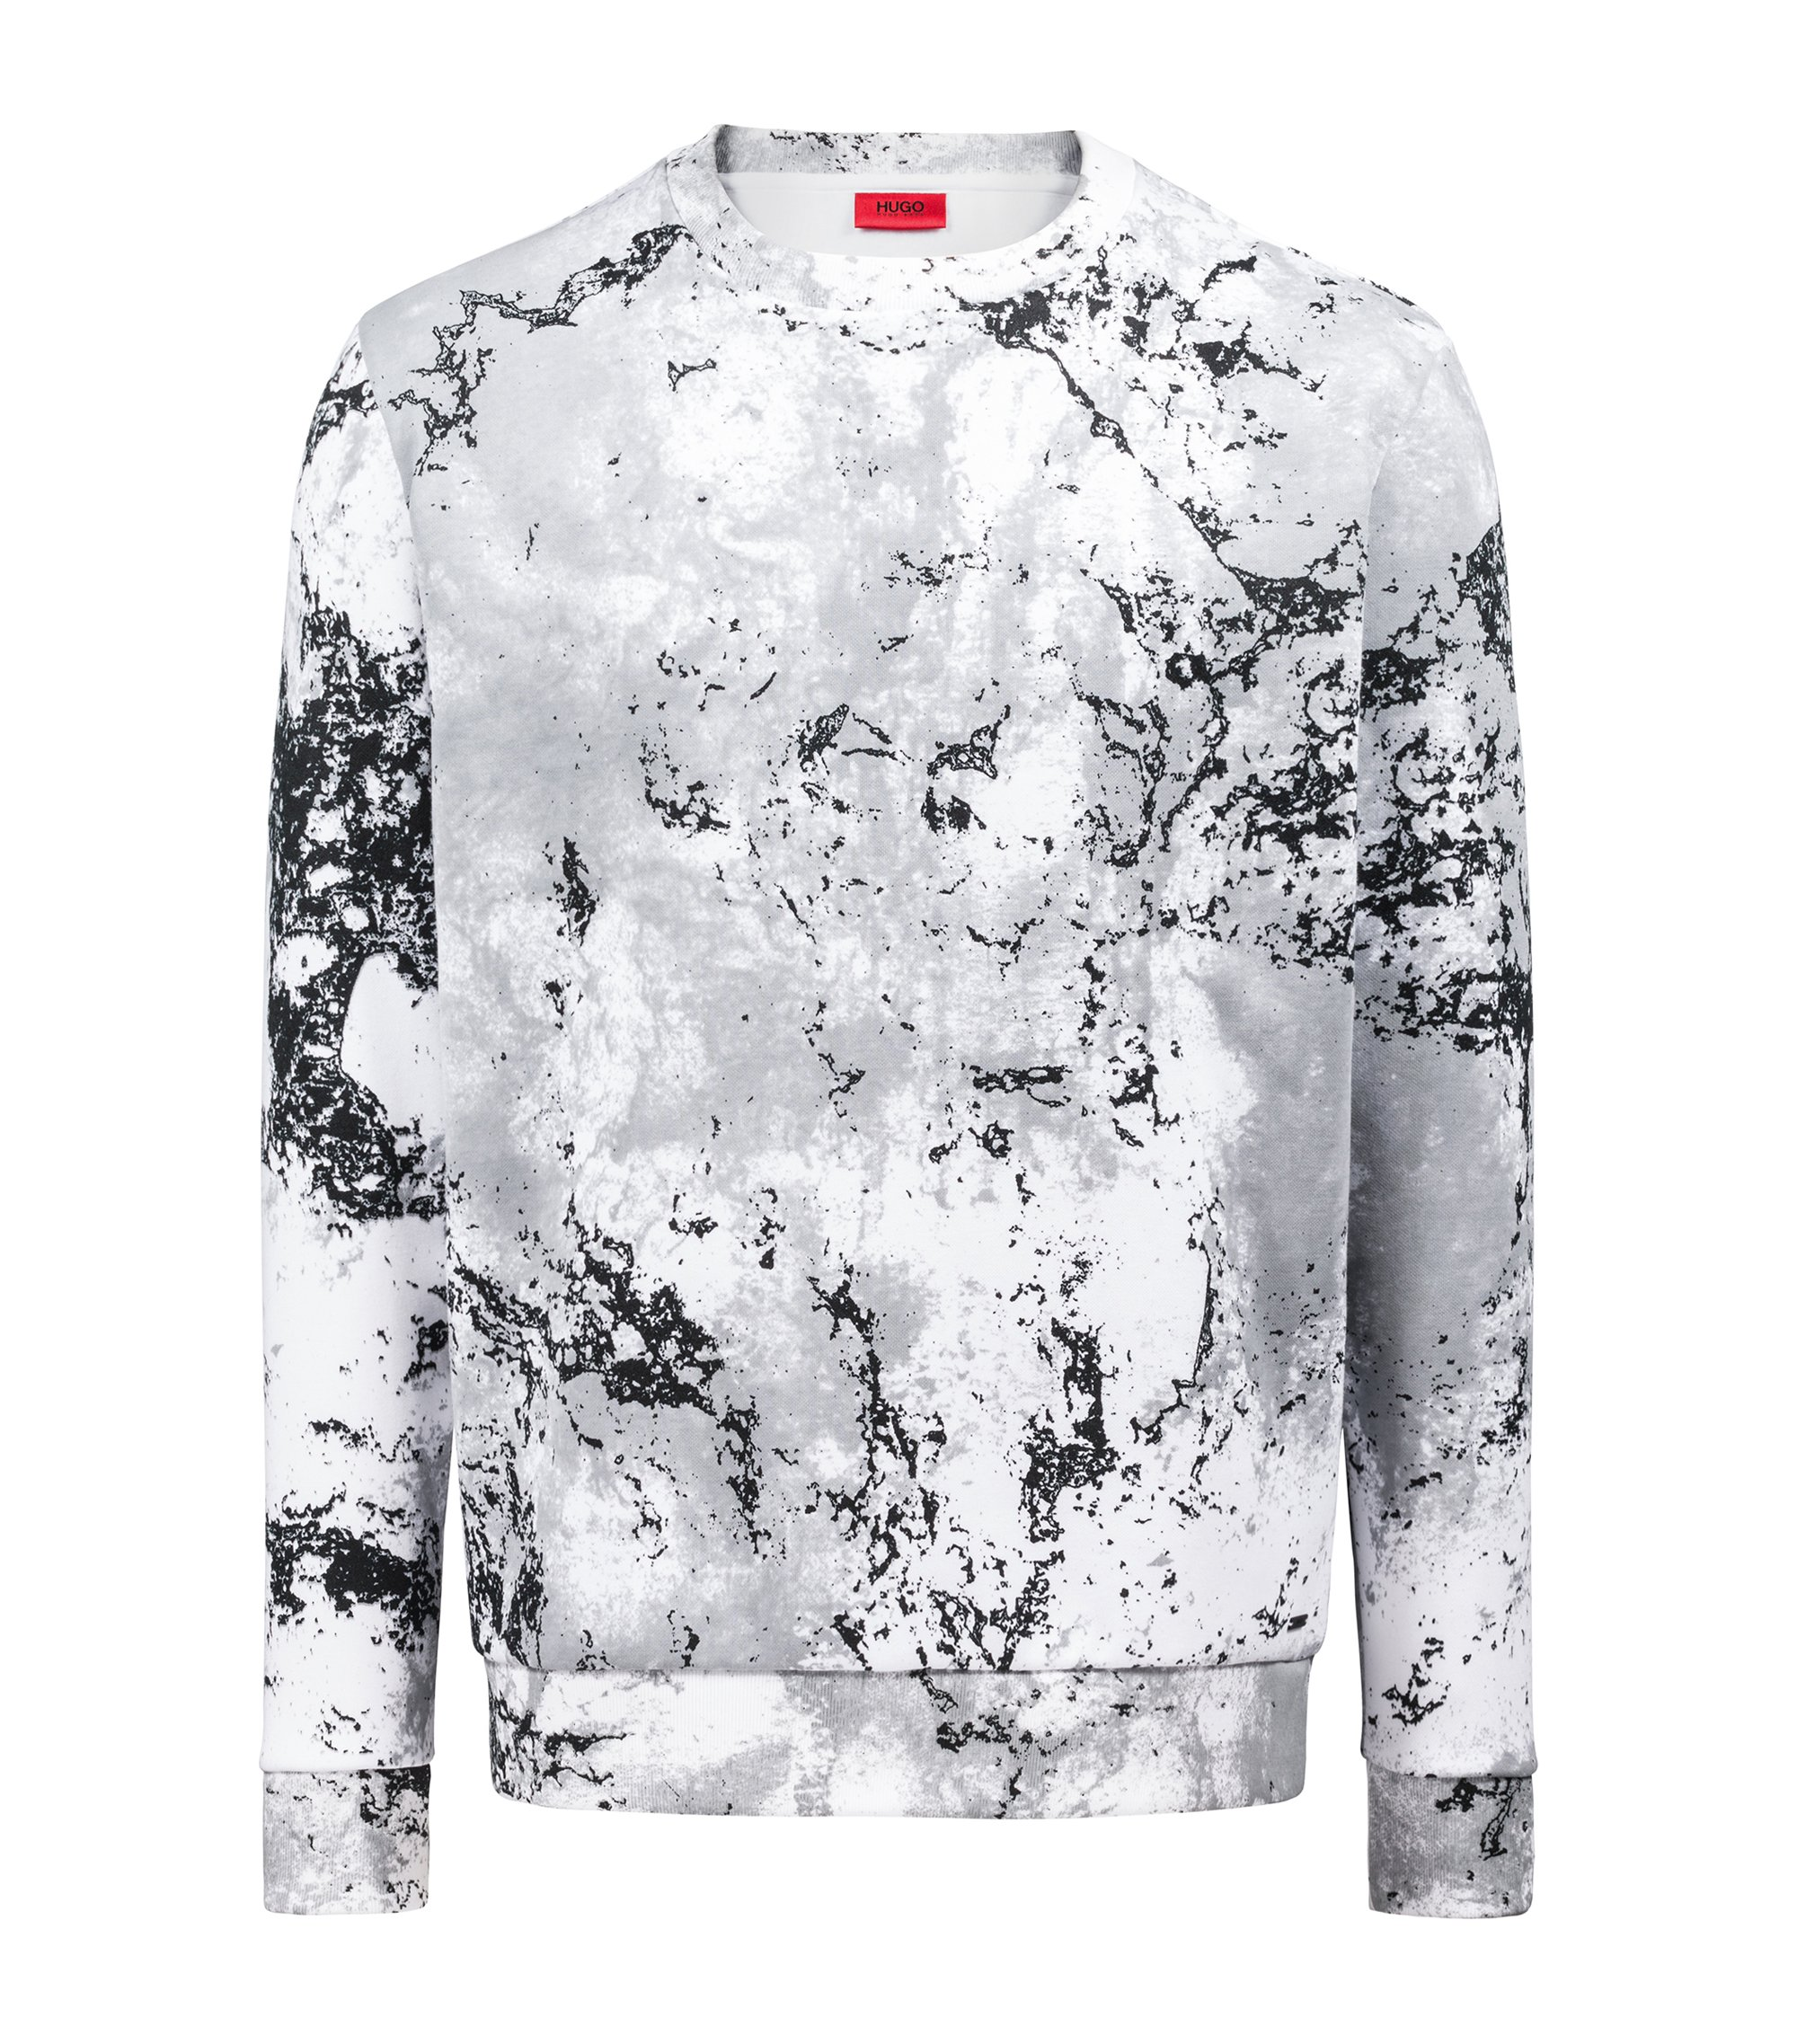 Oversized-fit fleece sweatshirt in snow-camouflage print, Patterned